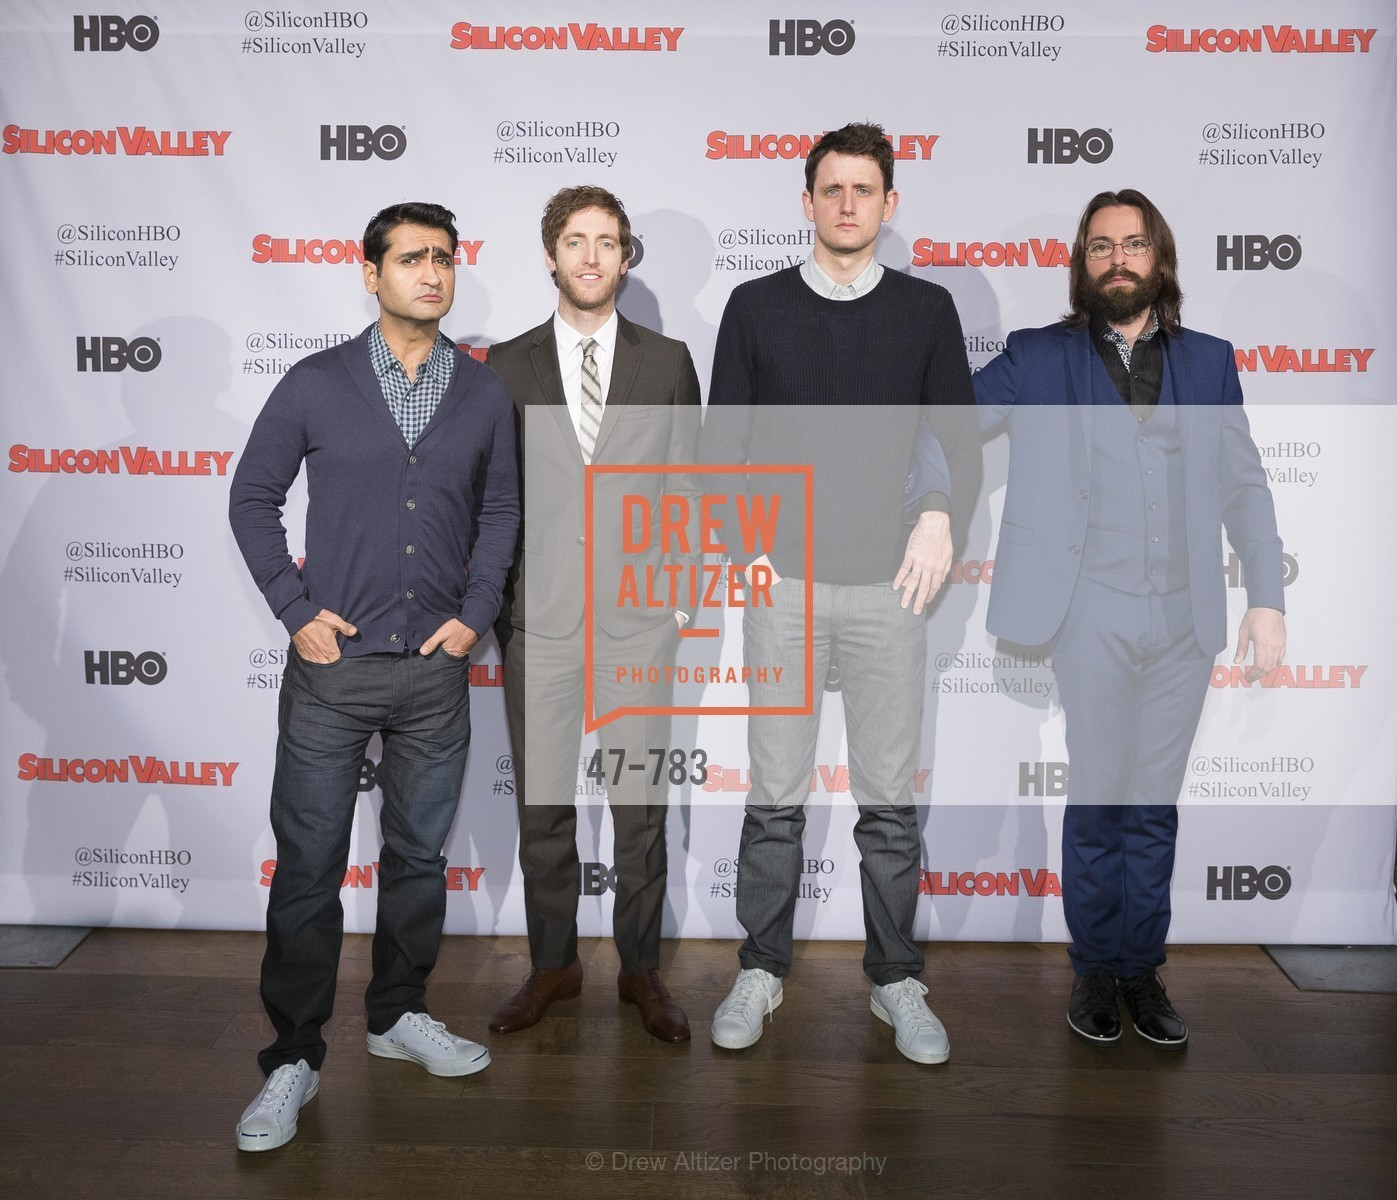 Kumail Nanjiani, Thomas Middleditch, Zach Woods, Martin Starr, HBO'S SILICON VALLEY San Francisco Screening, US, April 8th, 2015,Drew Altizer, Drew Altizer Photography, full-service agency, private events, San Francisco photographer, photographer california